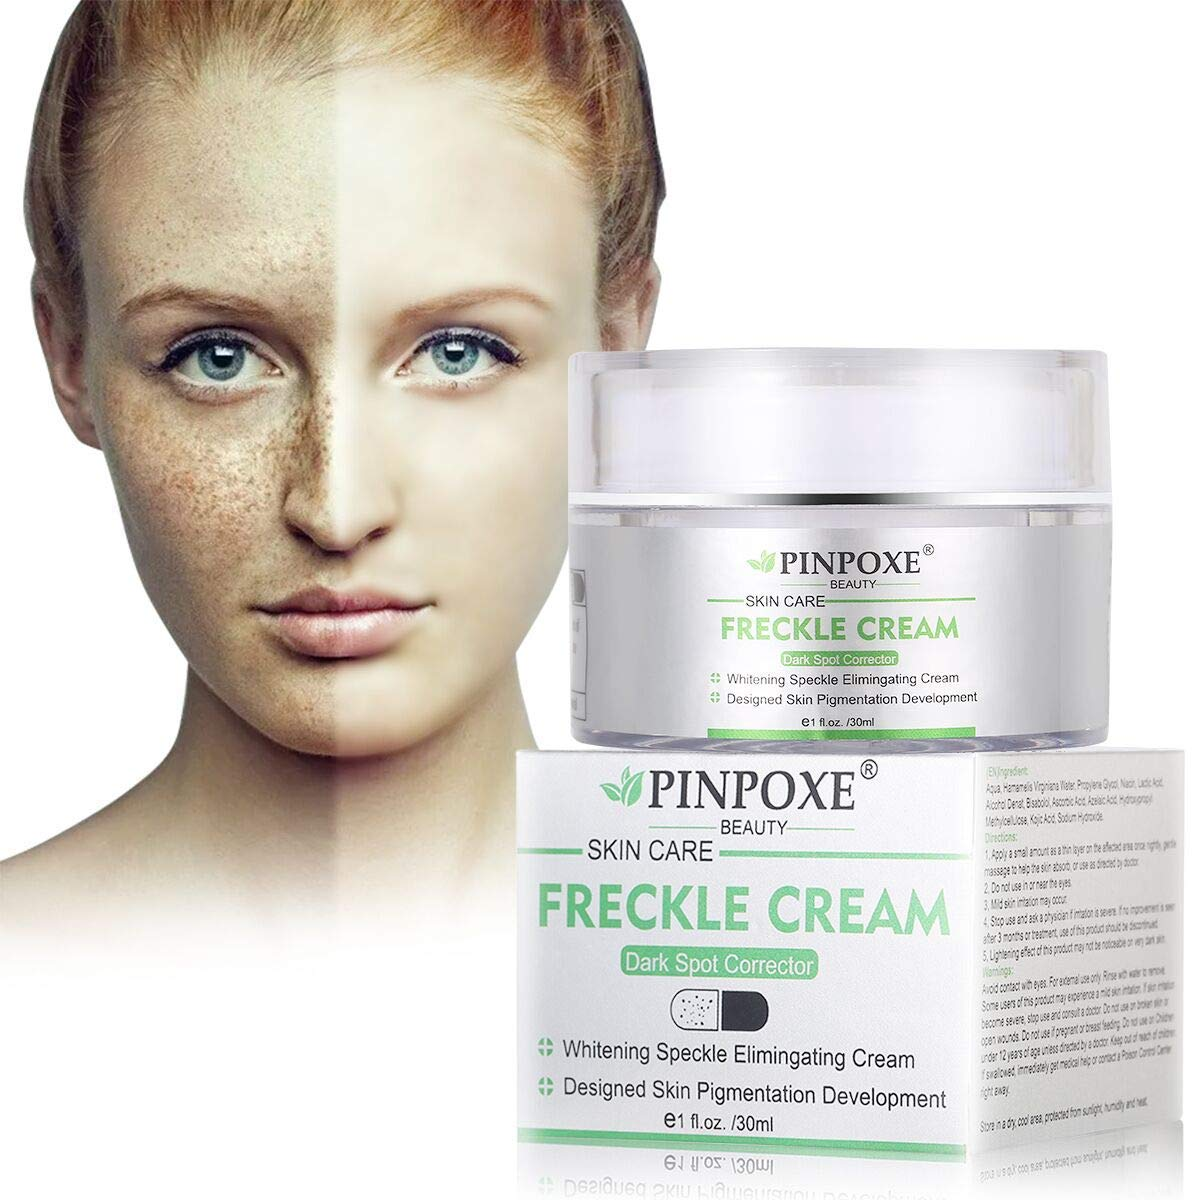 Whitening Cream, Freckle cream, Skin Brightening Cream, Bleaching Cream, Freckle Fade Removal, Dark Spot Corrector Remover, Whitens, Nourishes, Repairs & Restores Skin by BUOCEANS Official